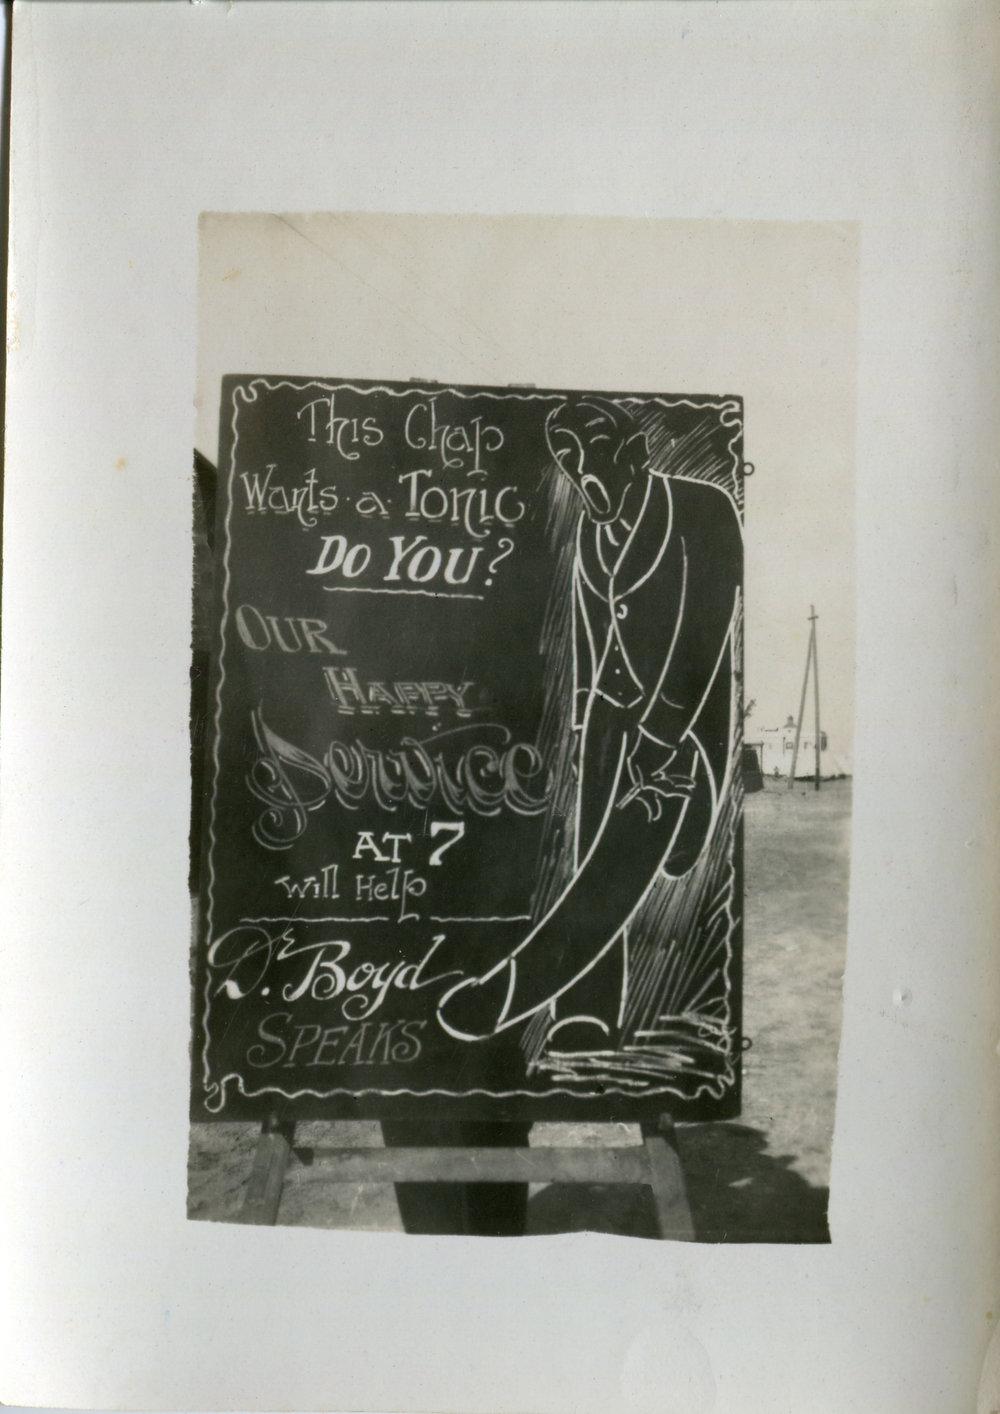 Reg's chalkboard advertising Dr Boyd's service. Reg's drawing implies the 'tonic' this chap needs is one to treat the syphilis affecting his left knee...